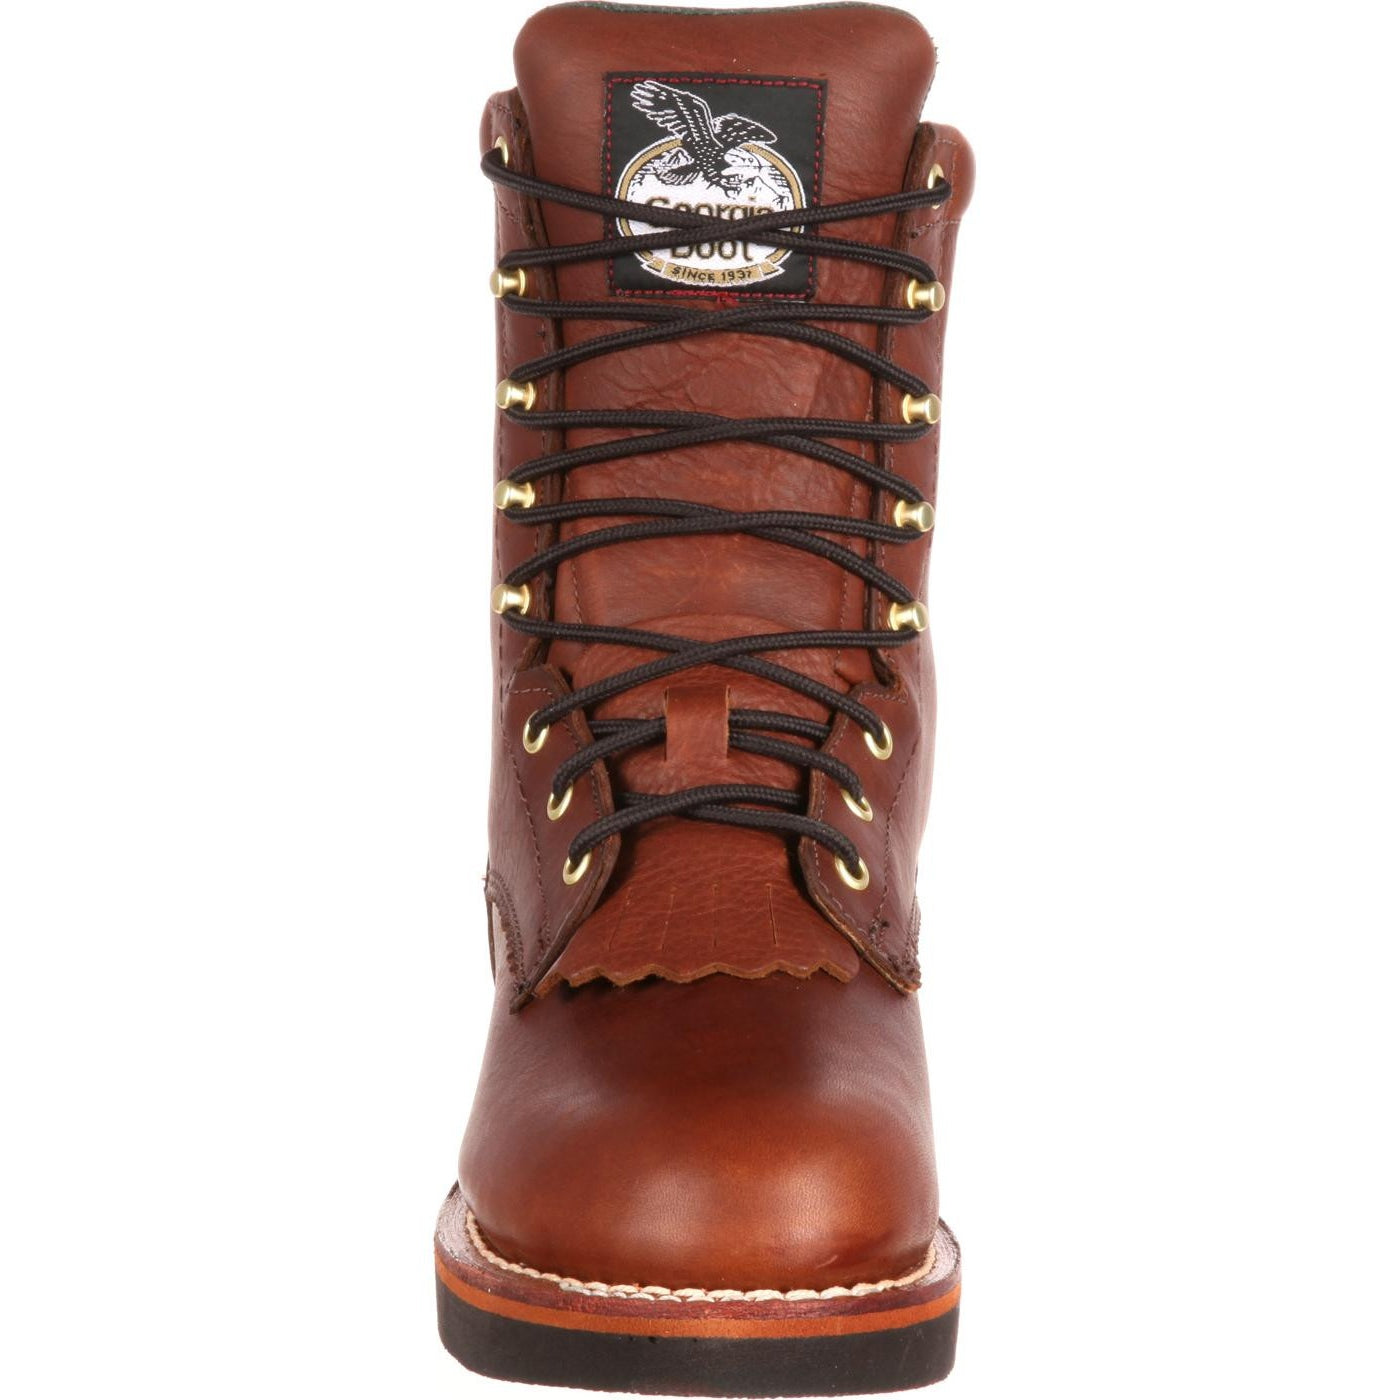 2f59e2566eb Men's Georgia Boots Farm and Ranch Lacer Work Boots